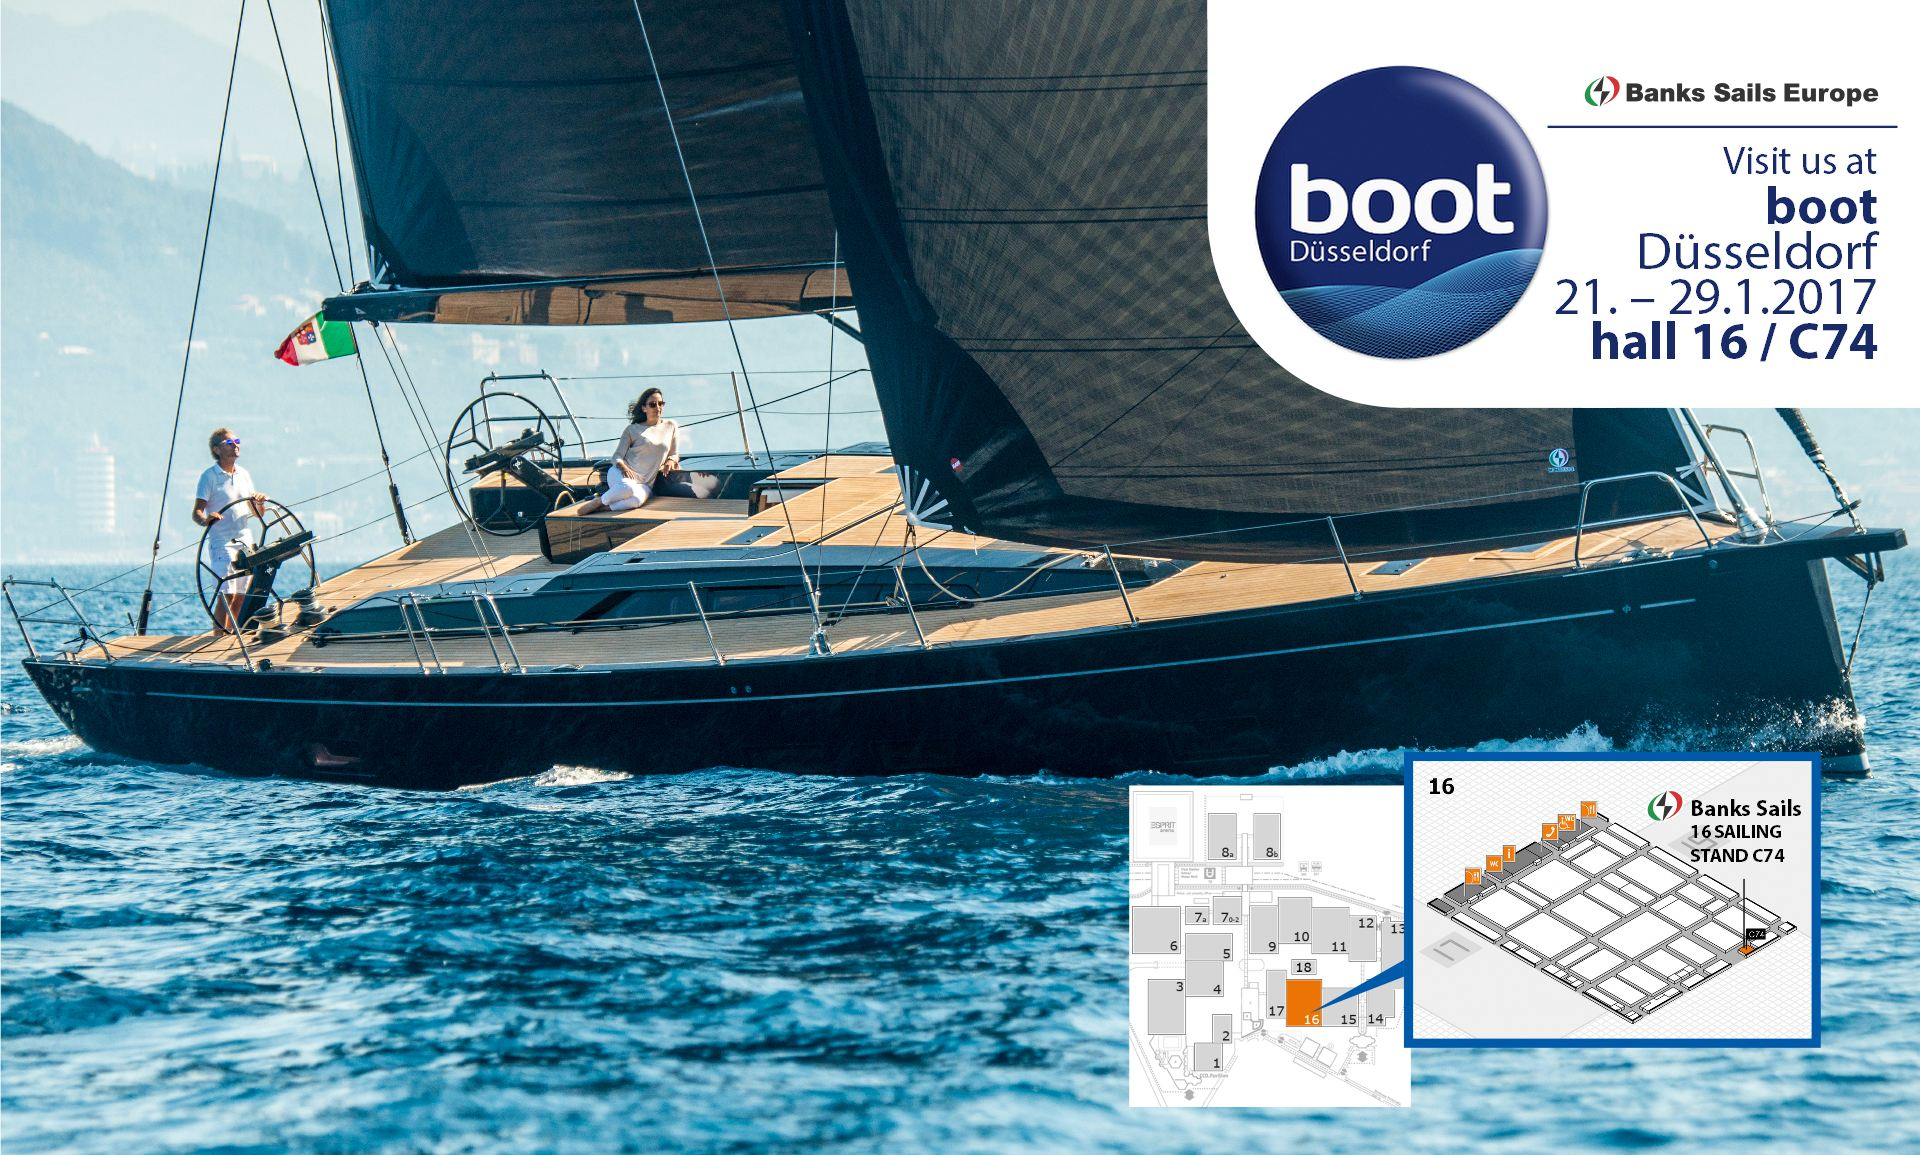 Banks Sails at boot Dusseldorf